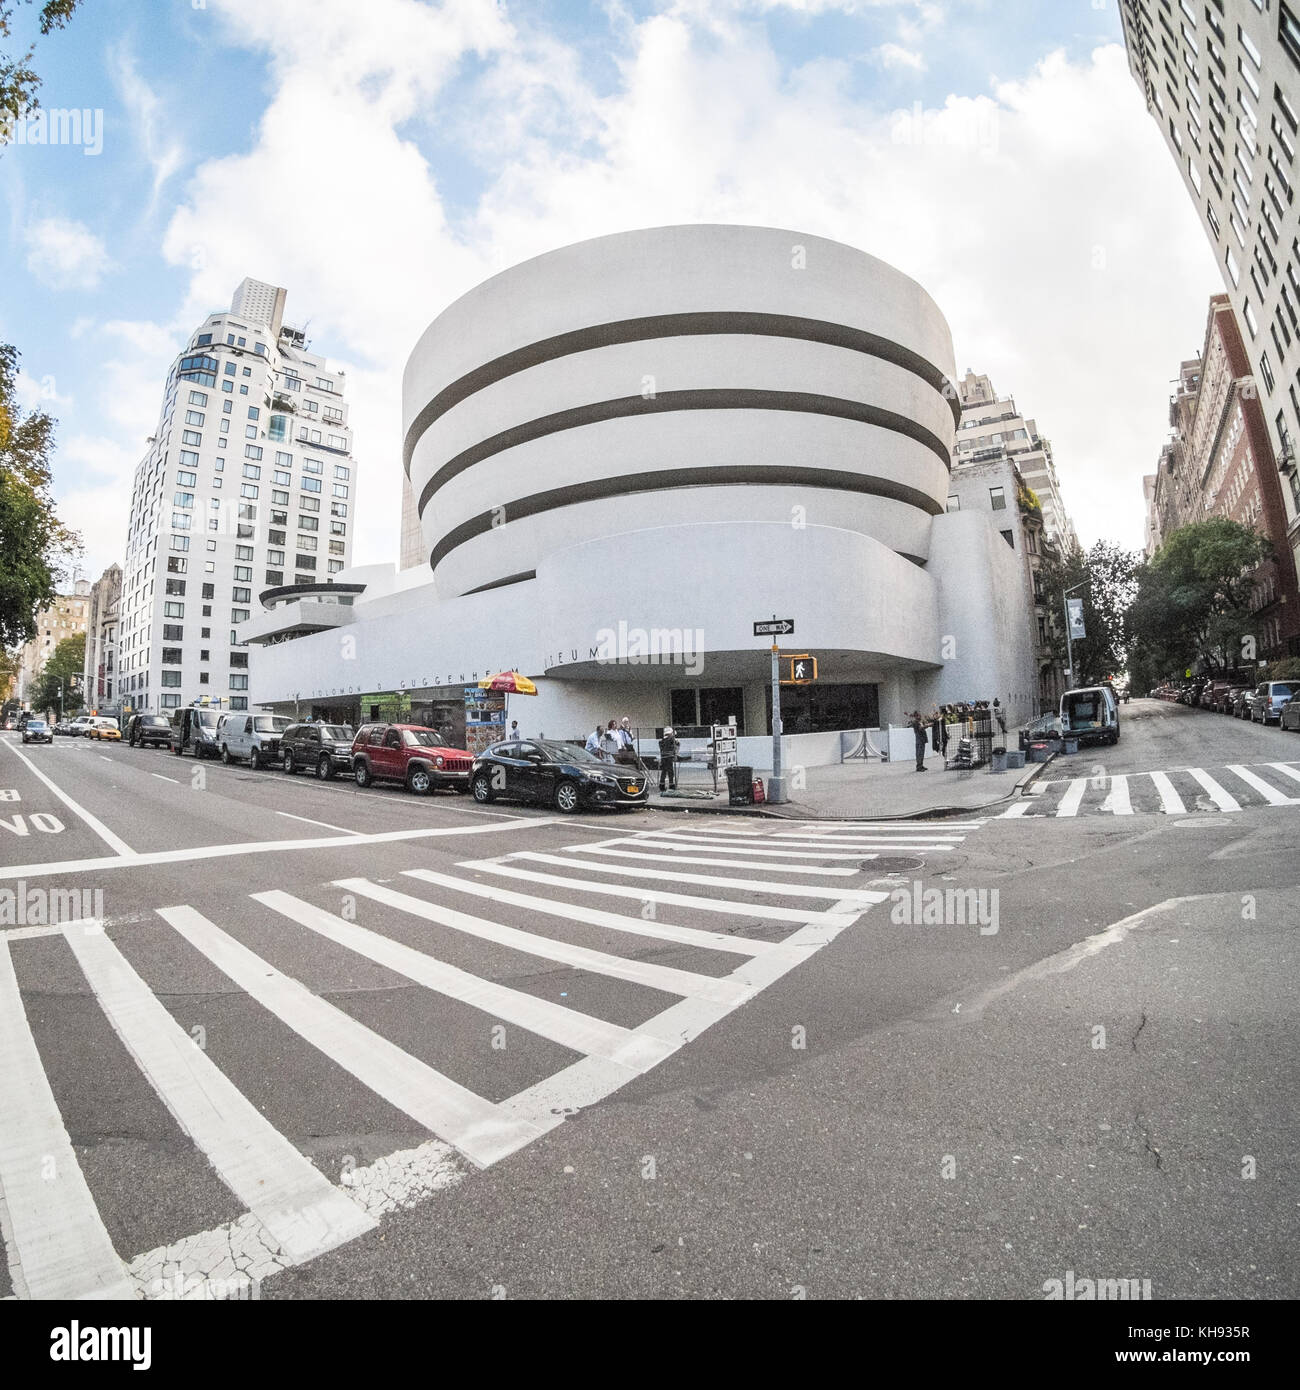 Solomon. R. Guggenheim Museum, 5th Avenue, Manhattan, New York City, NY, United States of America. U.S.A. Stock Photo